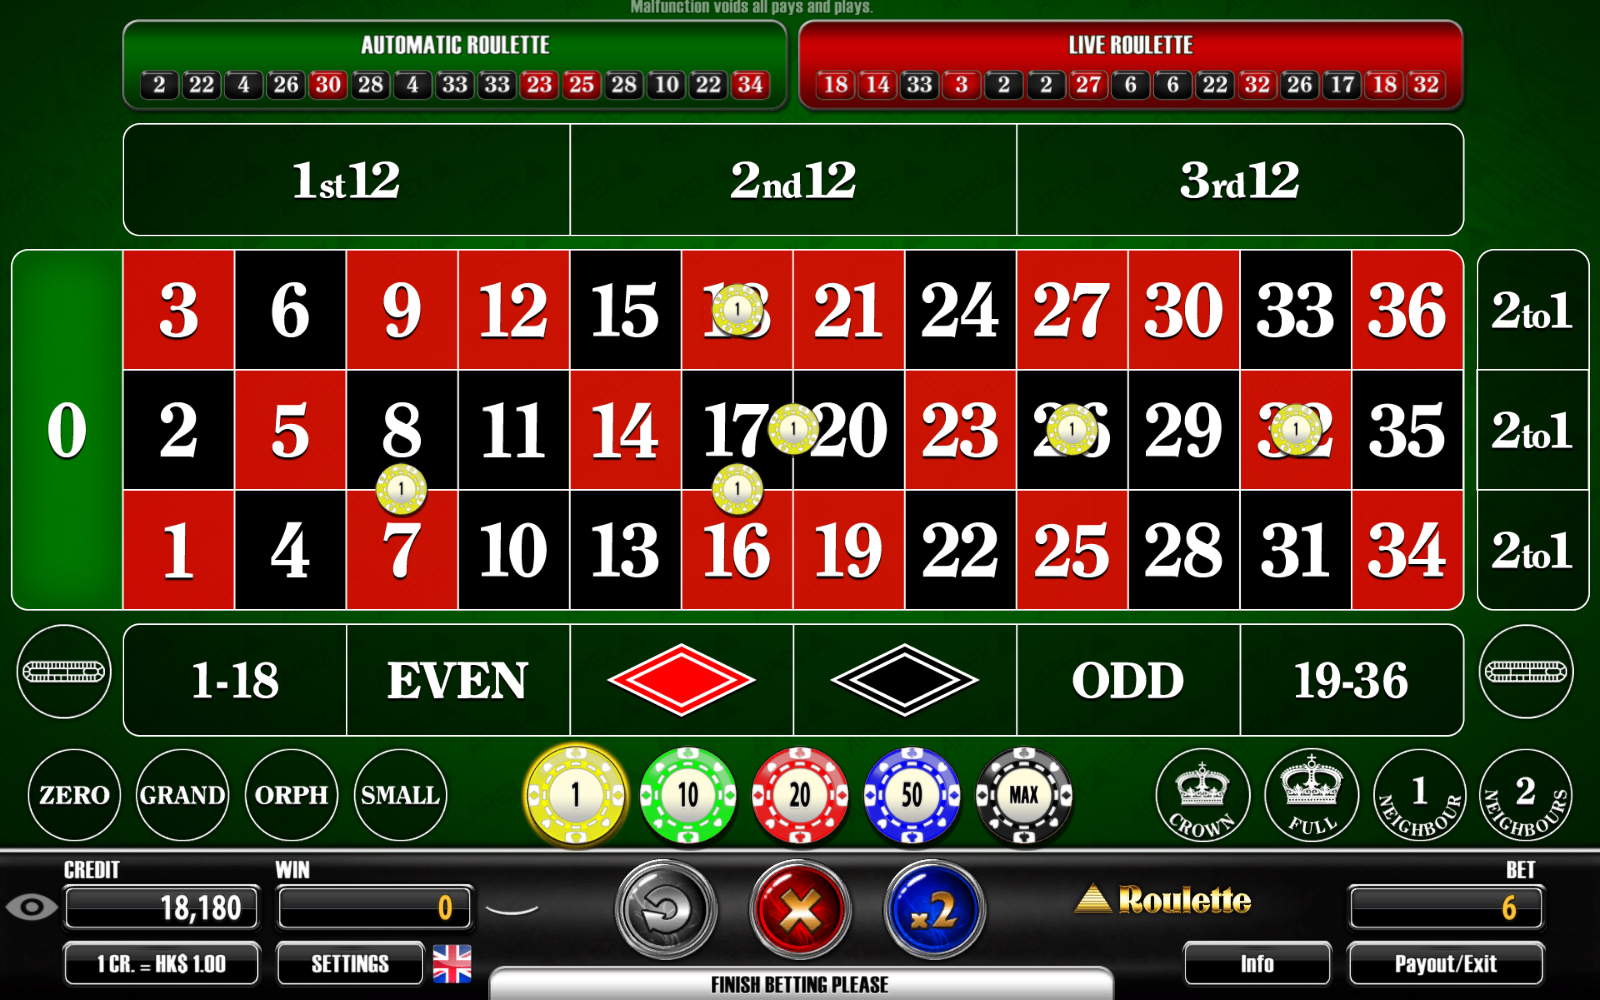 Best bets on roulette wheel games free poker